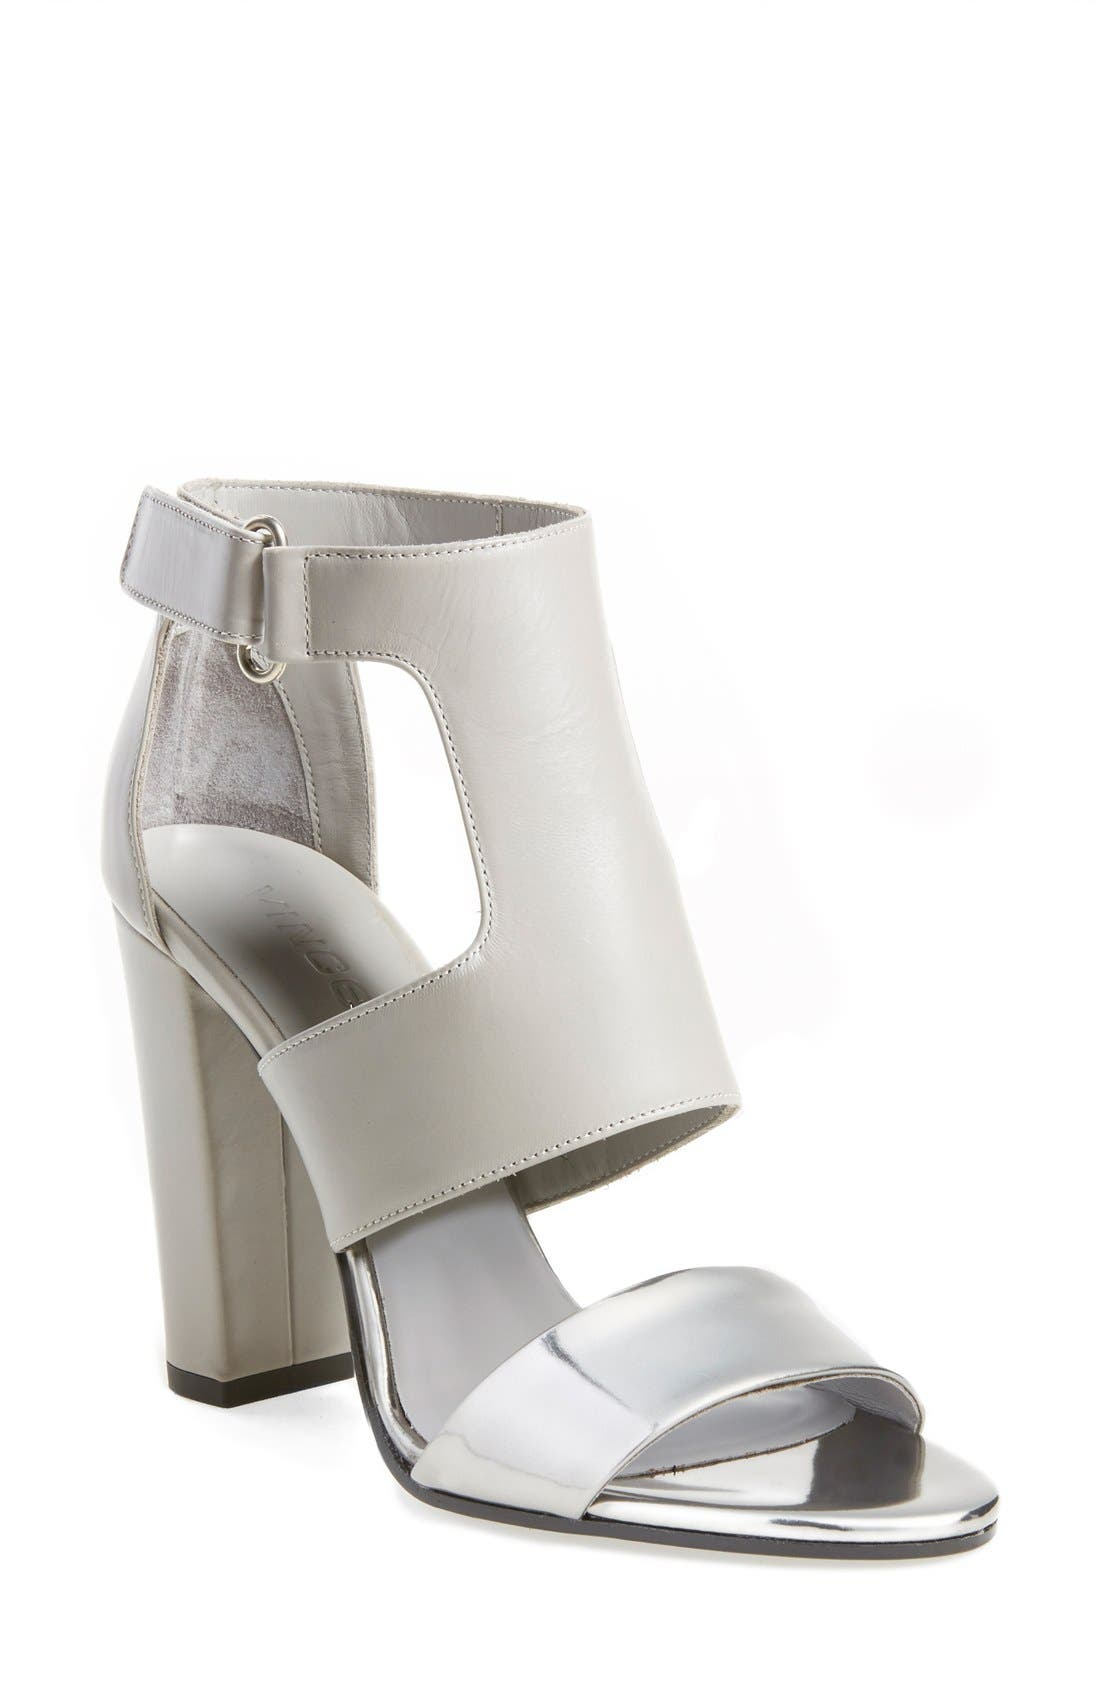 Alternate Image 1 Selected - Vince 'Aretha' Colorblock Sandal (Women)